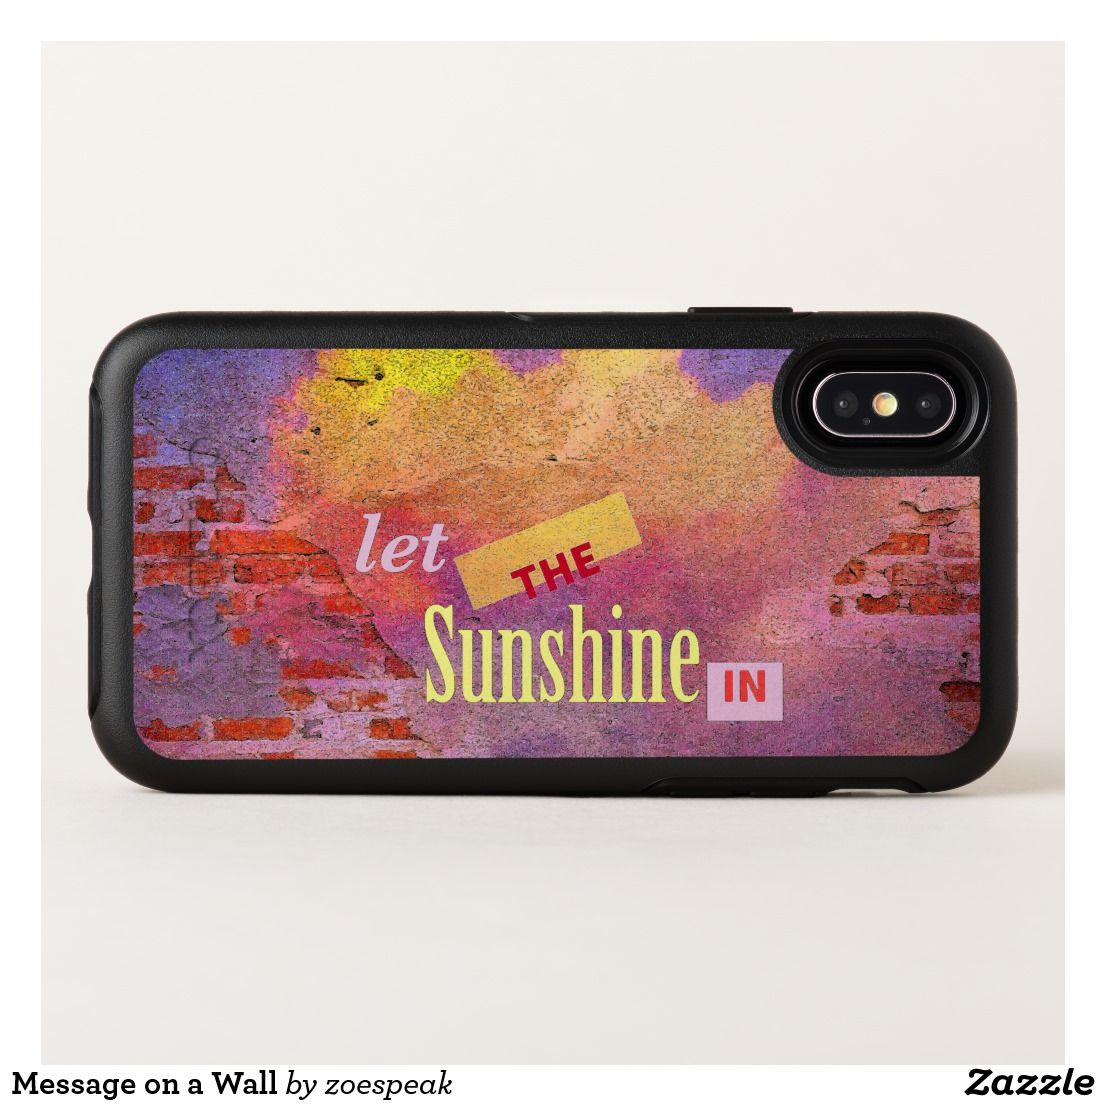 Message on a wall otterbox iphone case with